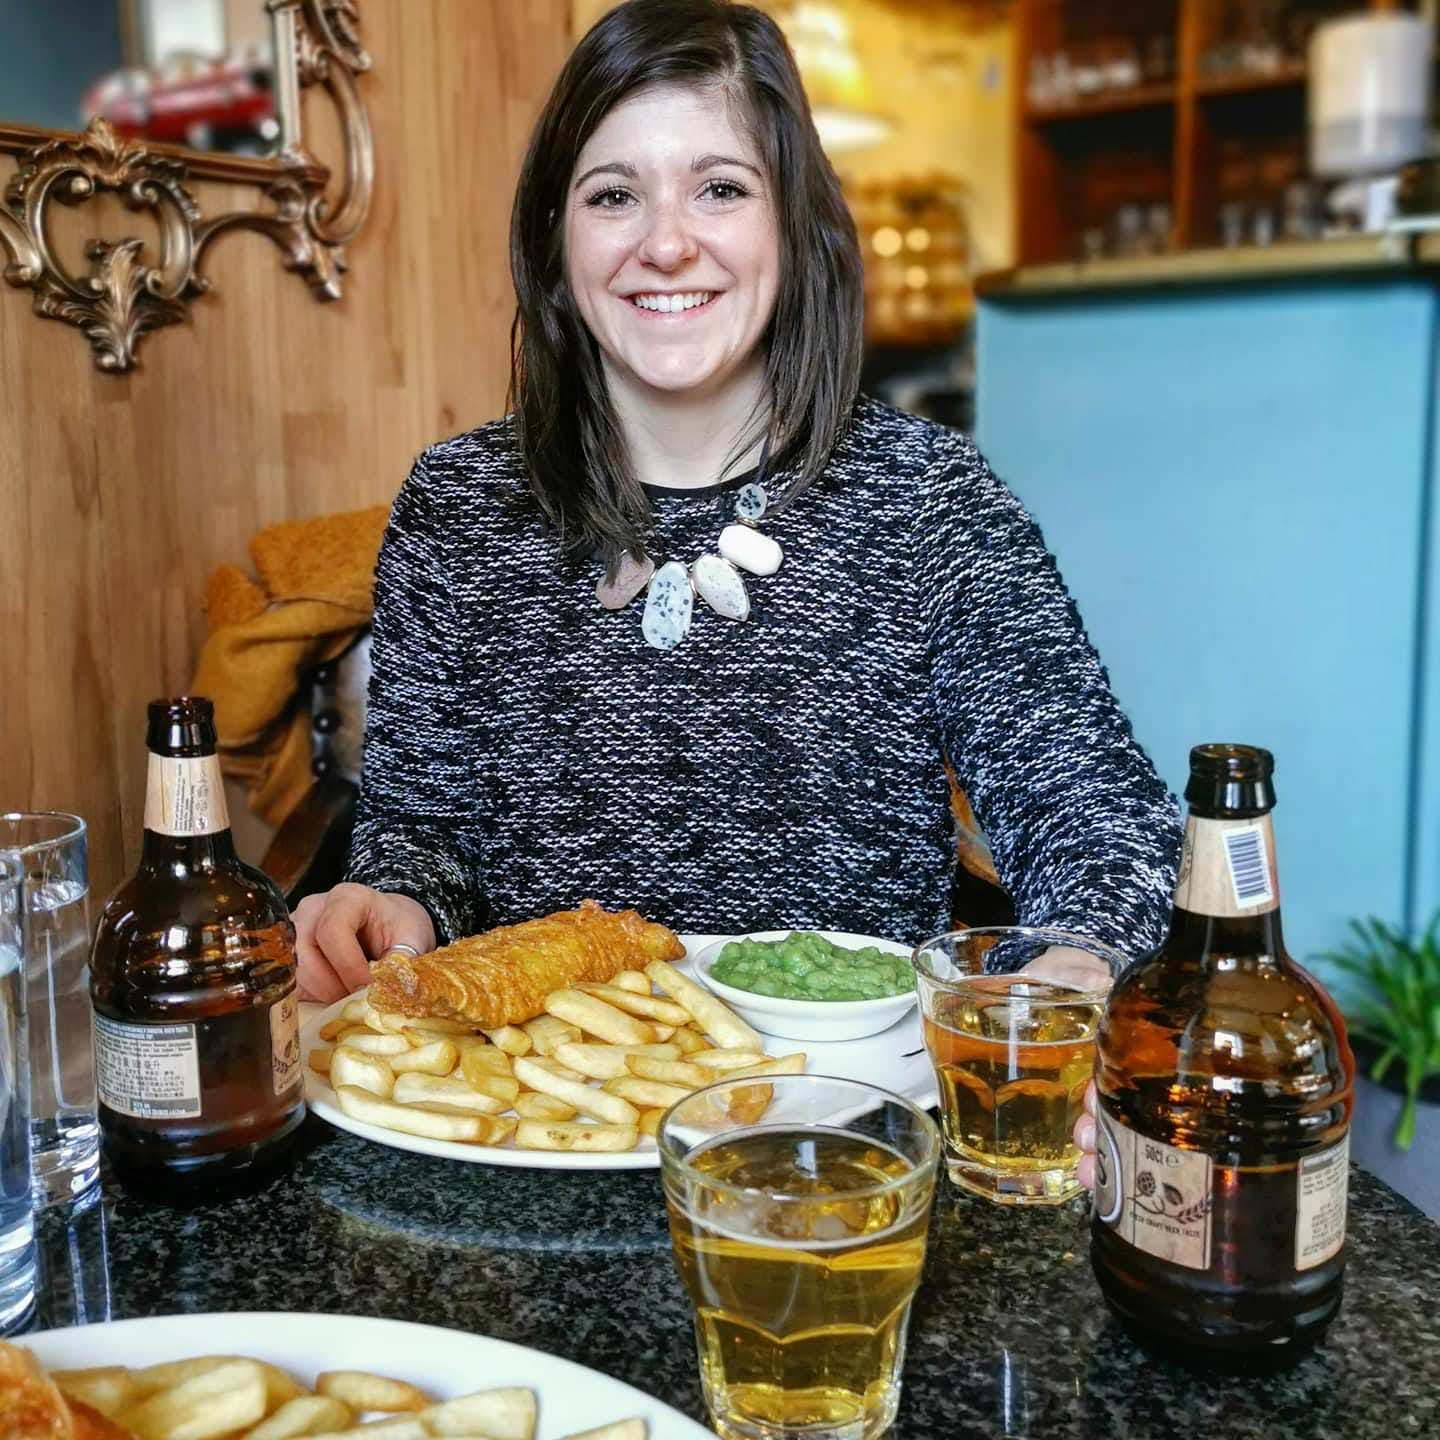 female at table with plate of fish and chips with mushy peas, and beer in front